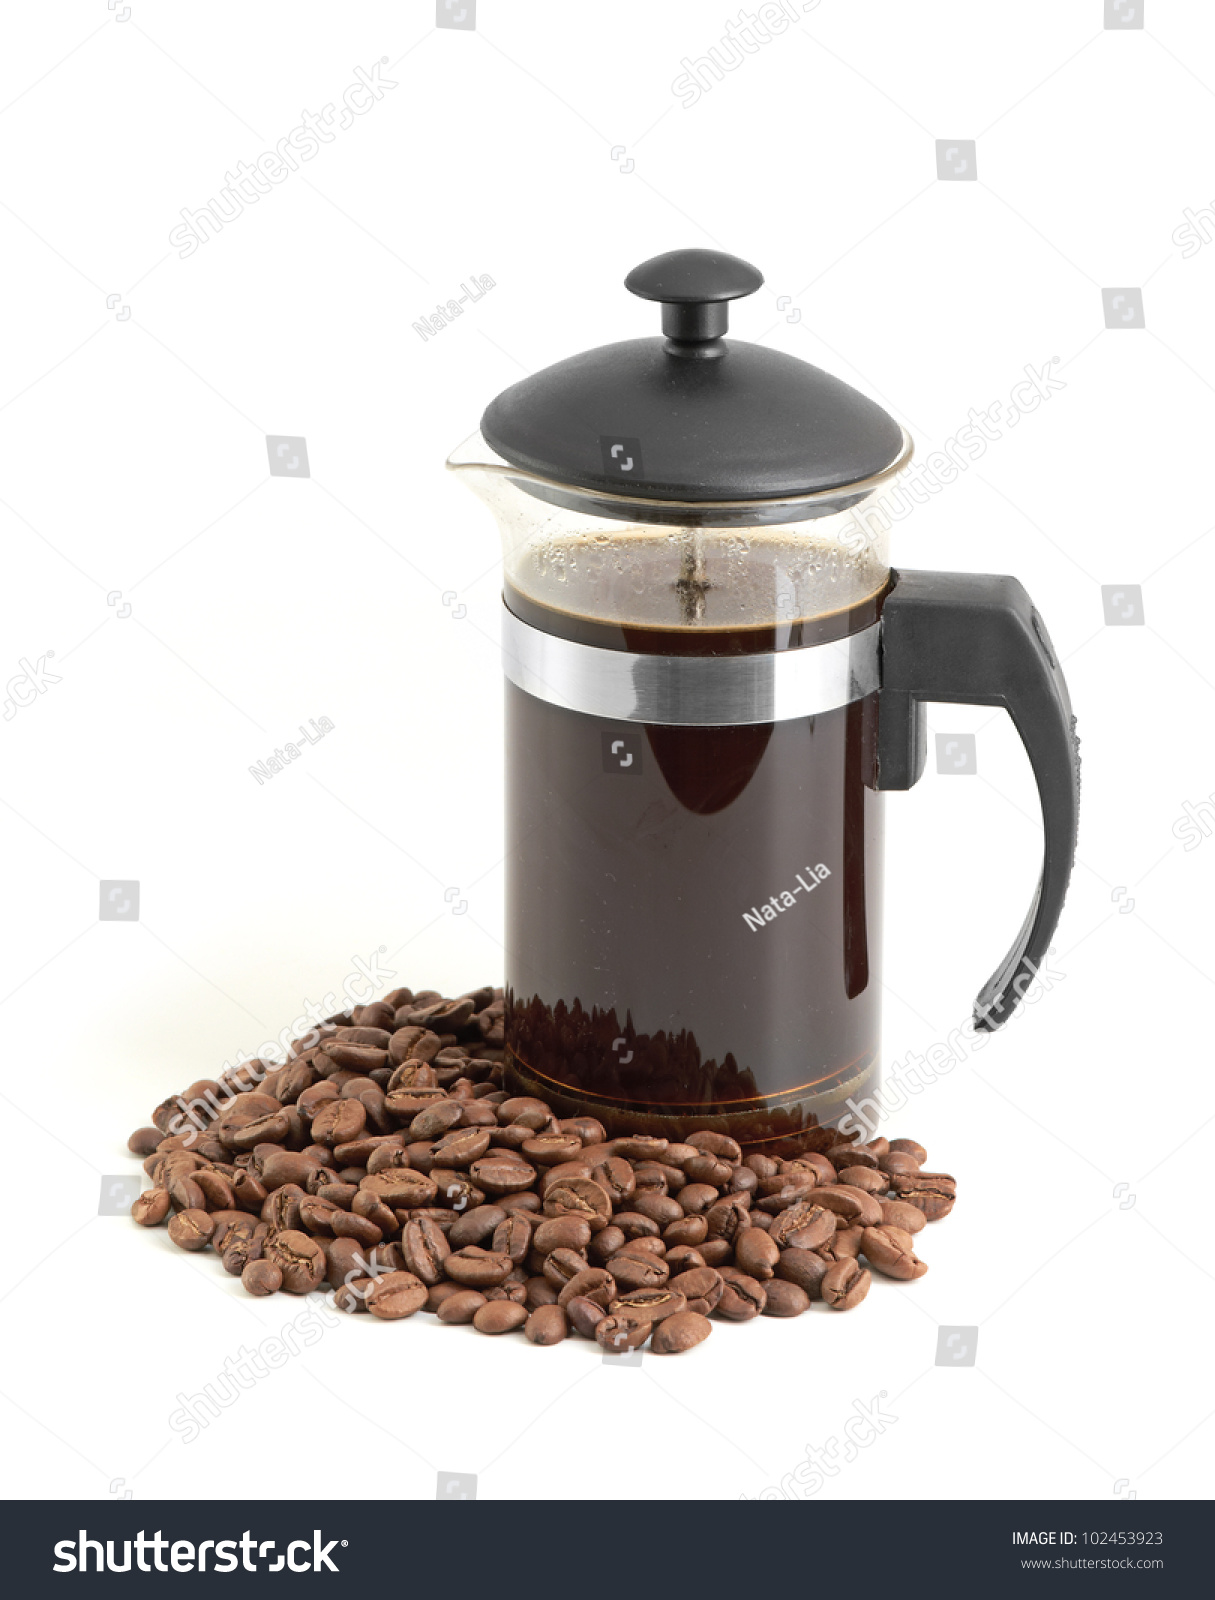 White French Press Coffee Maker : French Press Coffee Maker On White Background With Reflection Stock Photo 102453923 : Shutterstock